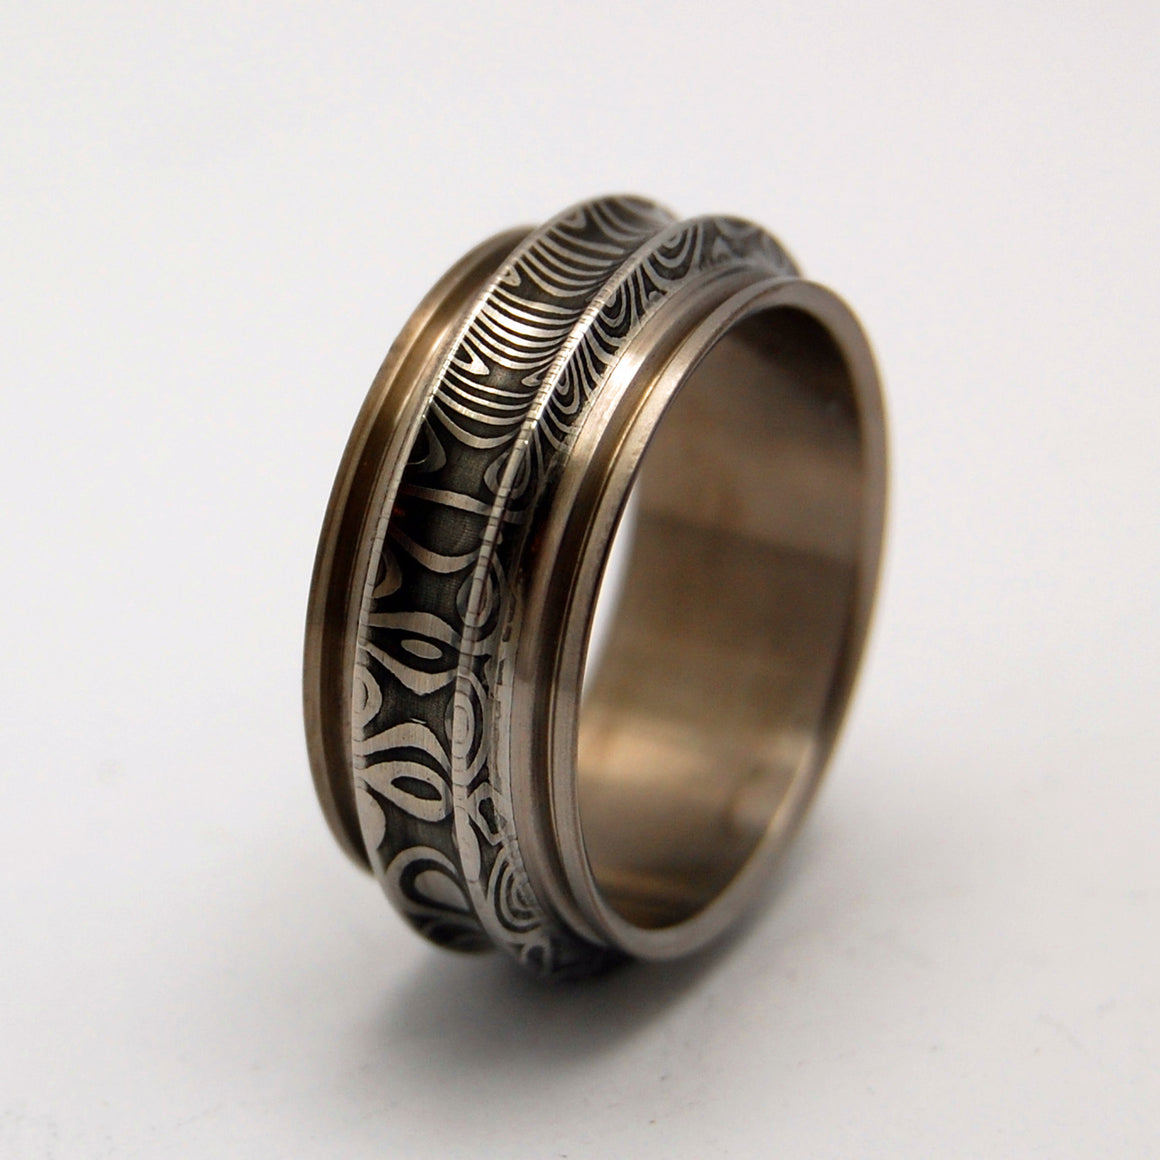 Mens Wedding Rings - Custom Mens Rings - Damasteel Wedding Rings | GROUND CONTROL